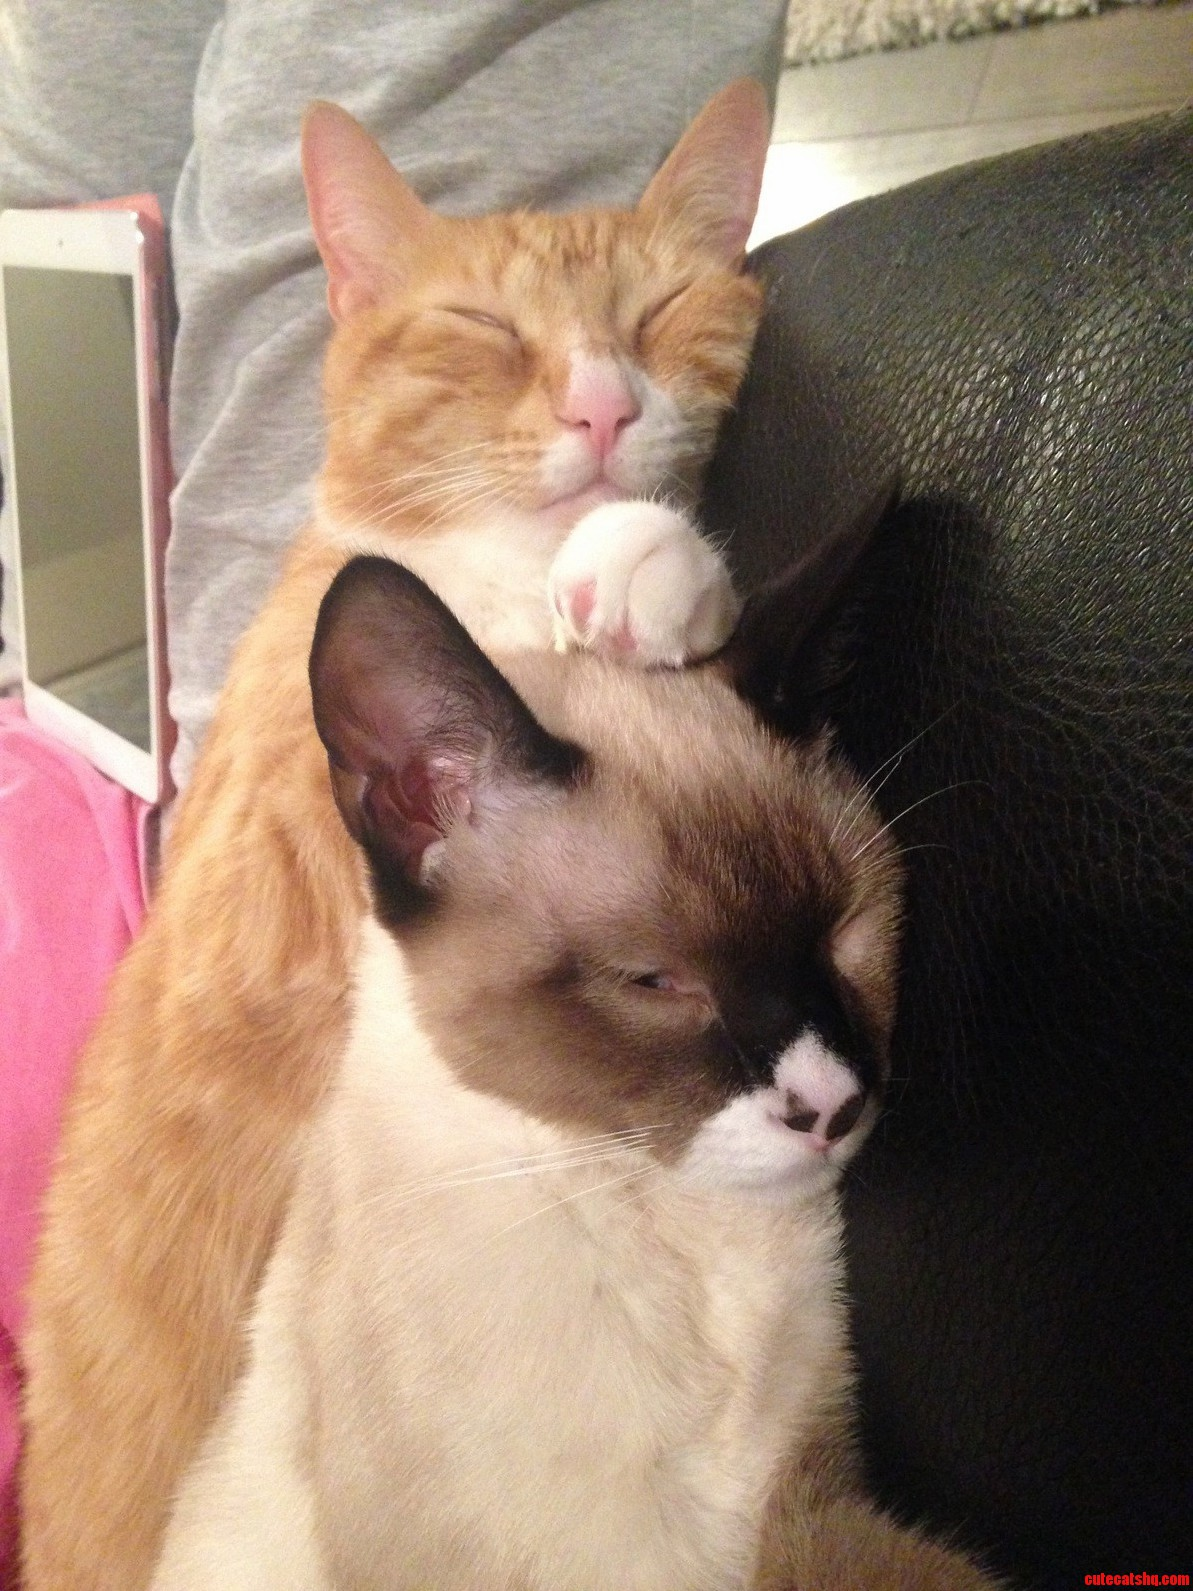 Two adoptive brothers getting along better than expected.